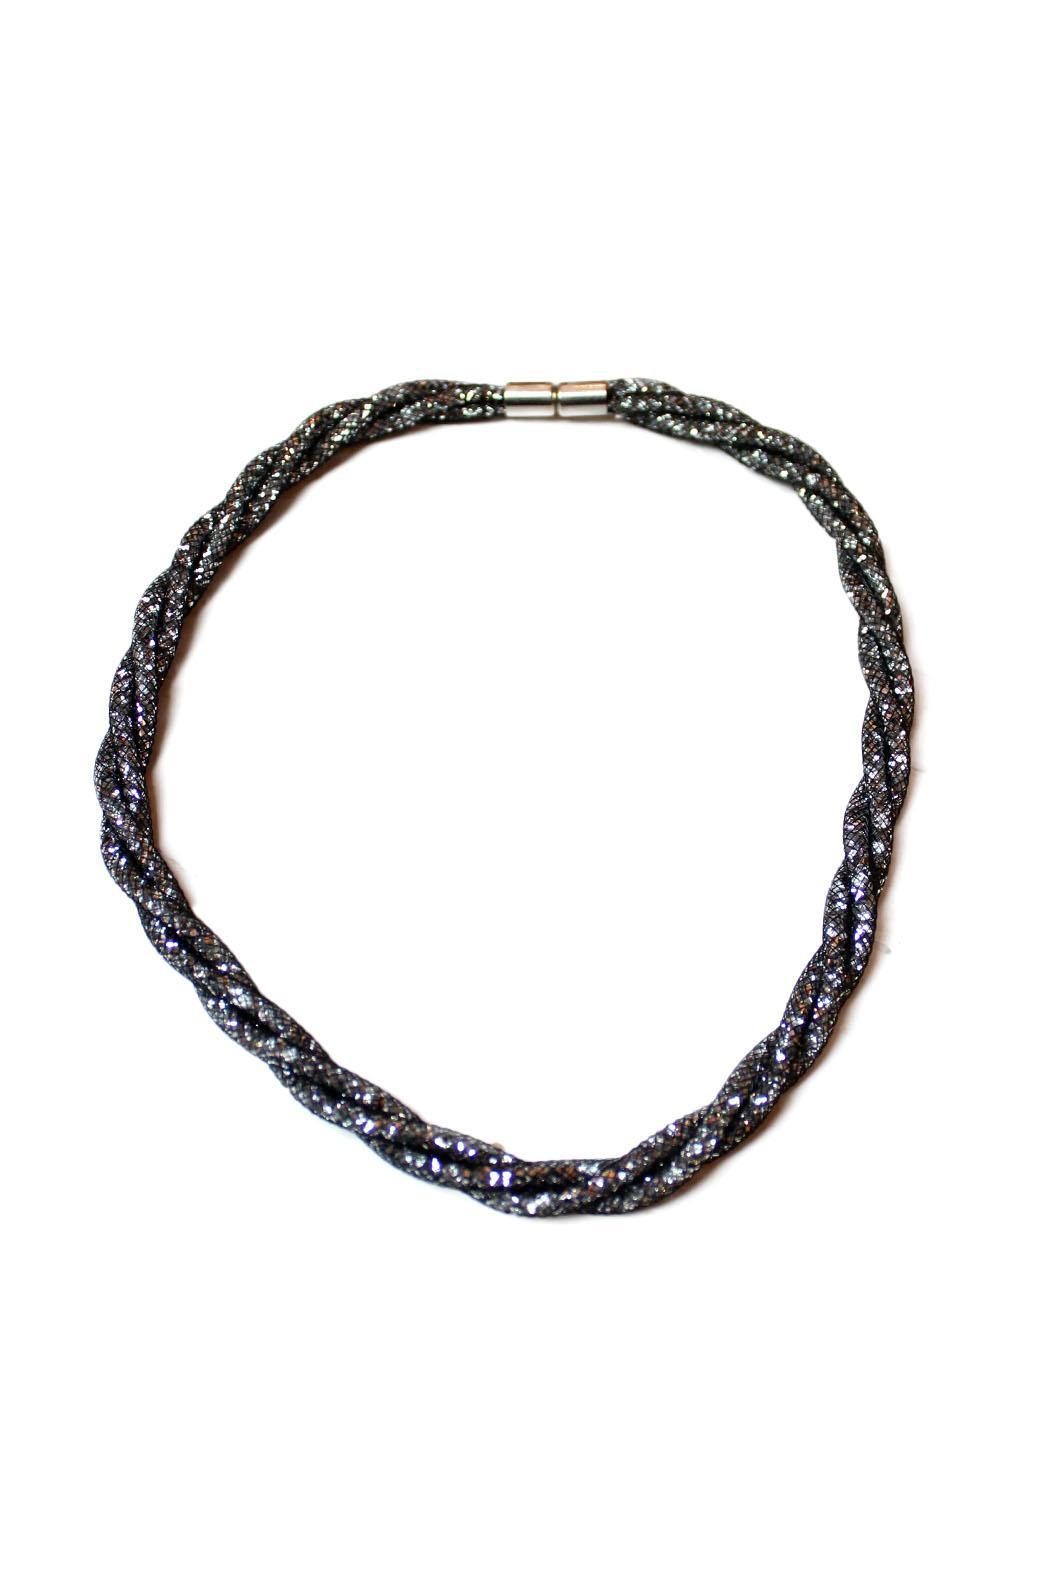 Carte Blanche Anklets Carte Blanche Black Sparkly Choker From Vancouver Shoptiques